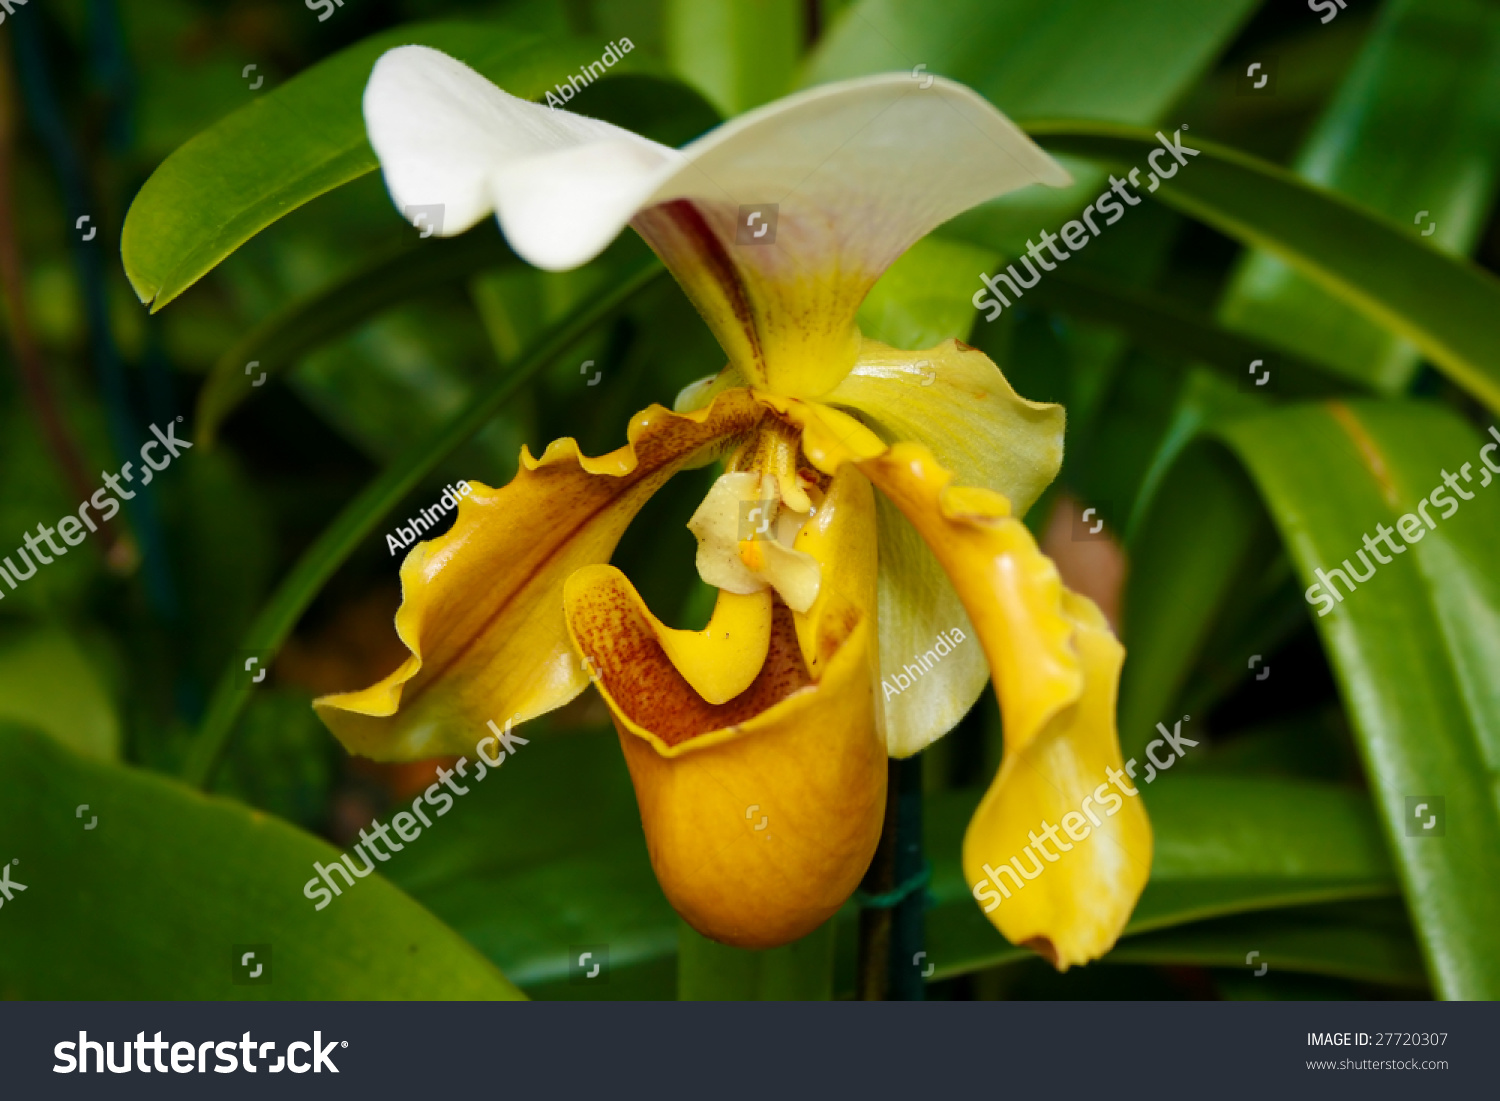 Yellow Slipper Orchid Stock Photo Safe To Use 27720307 Shutterstock